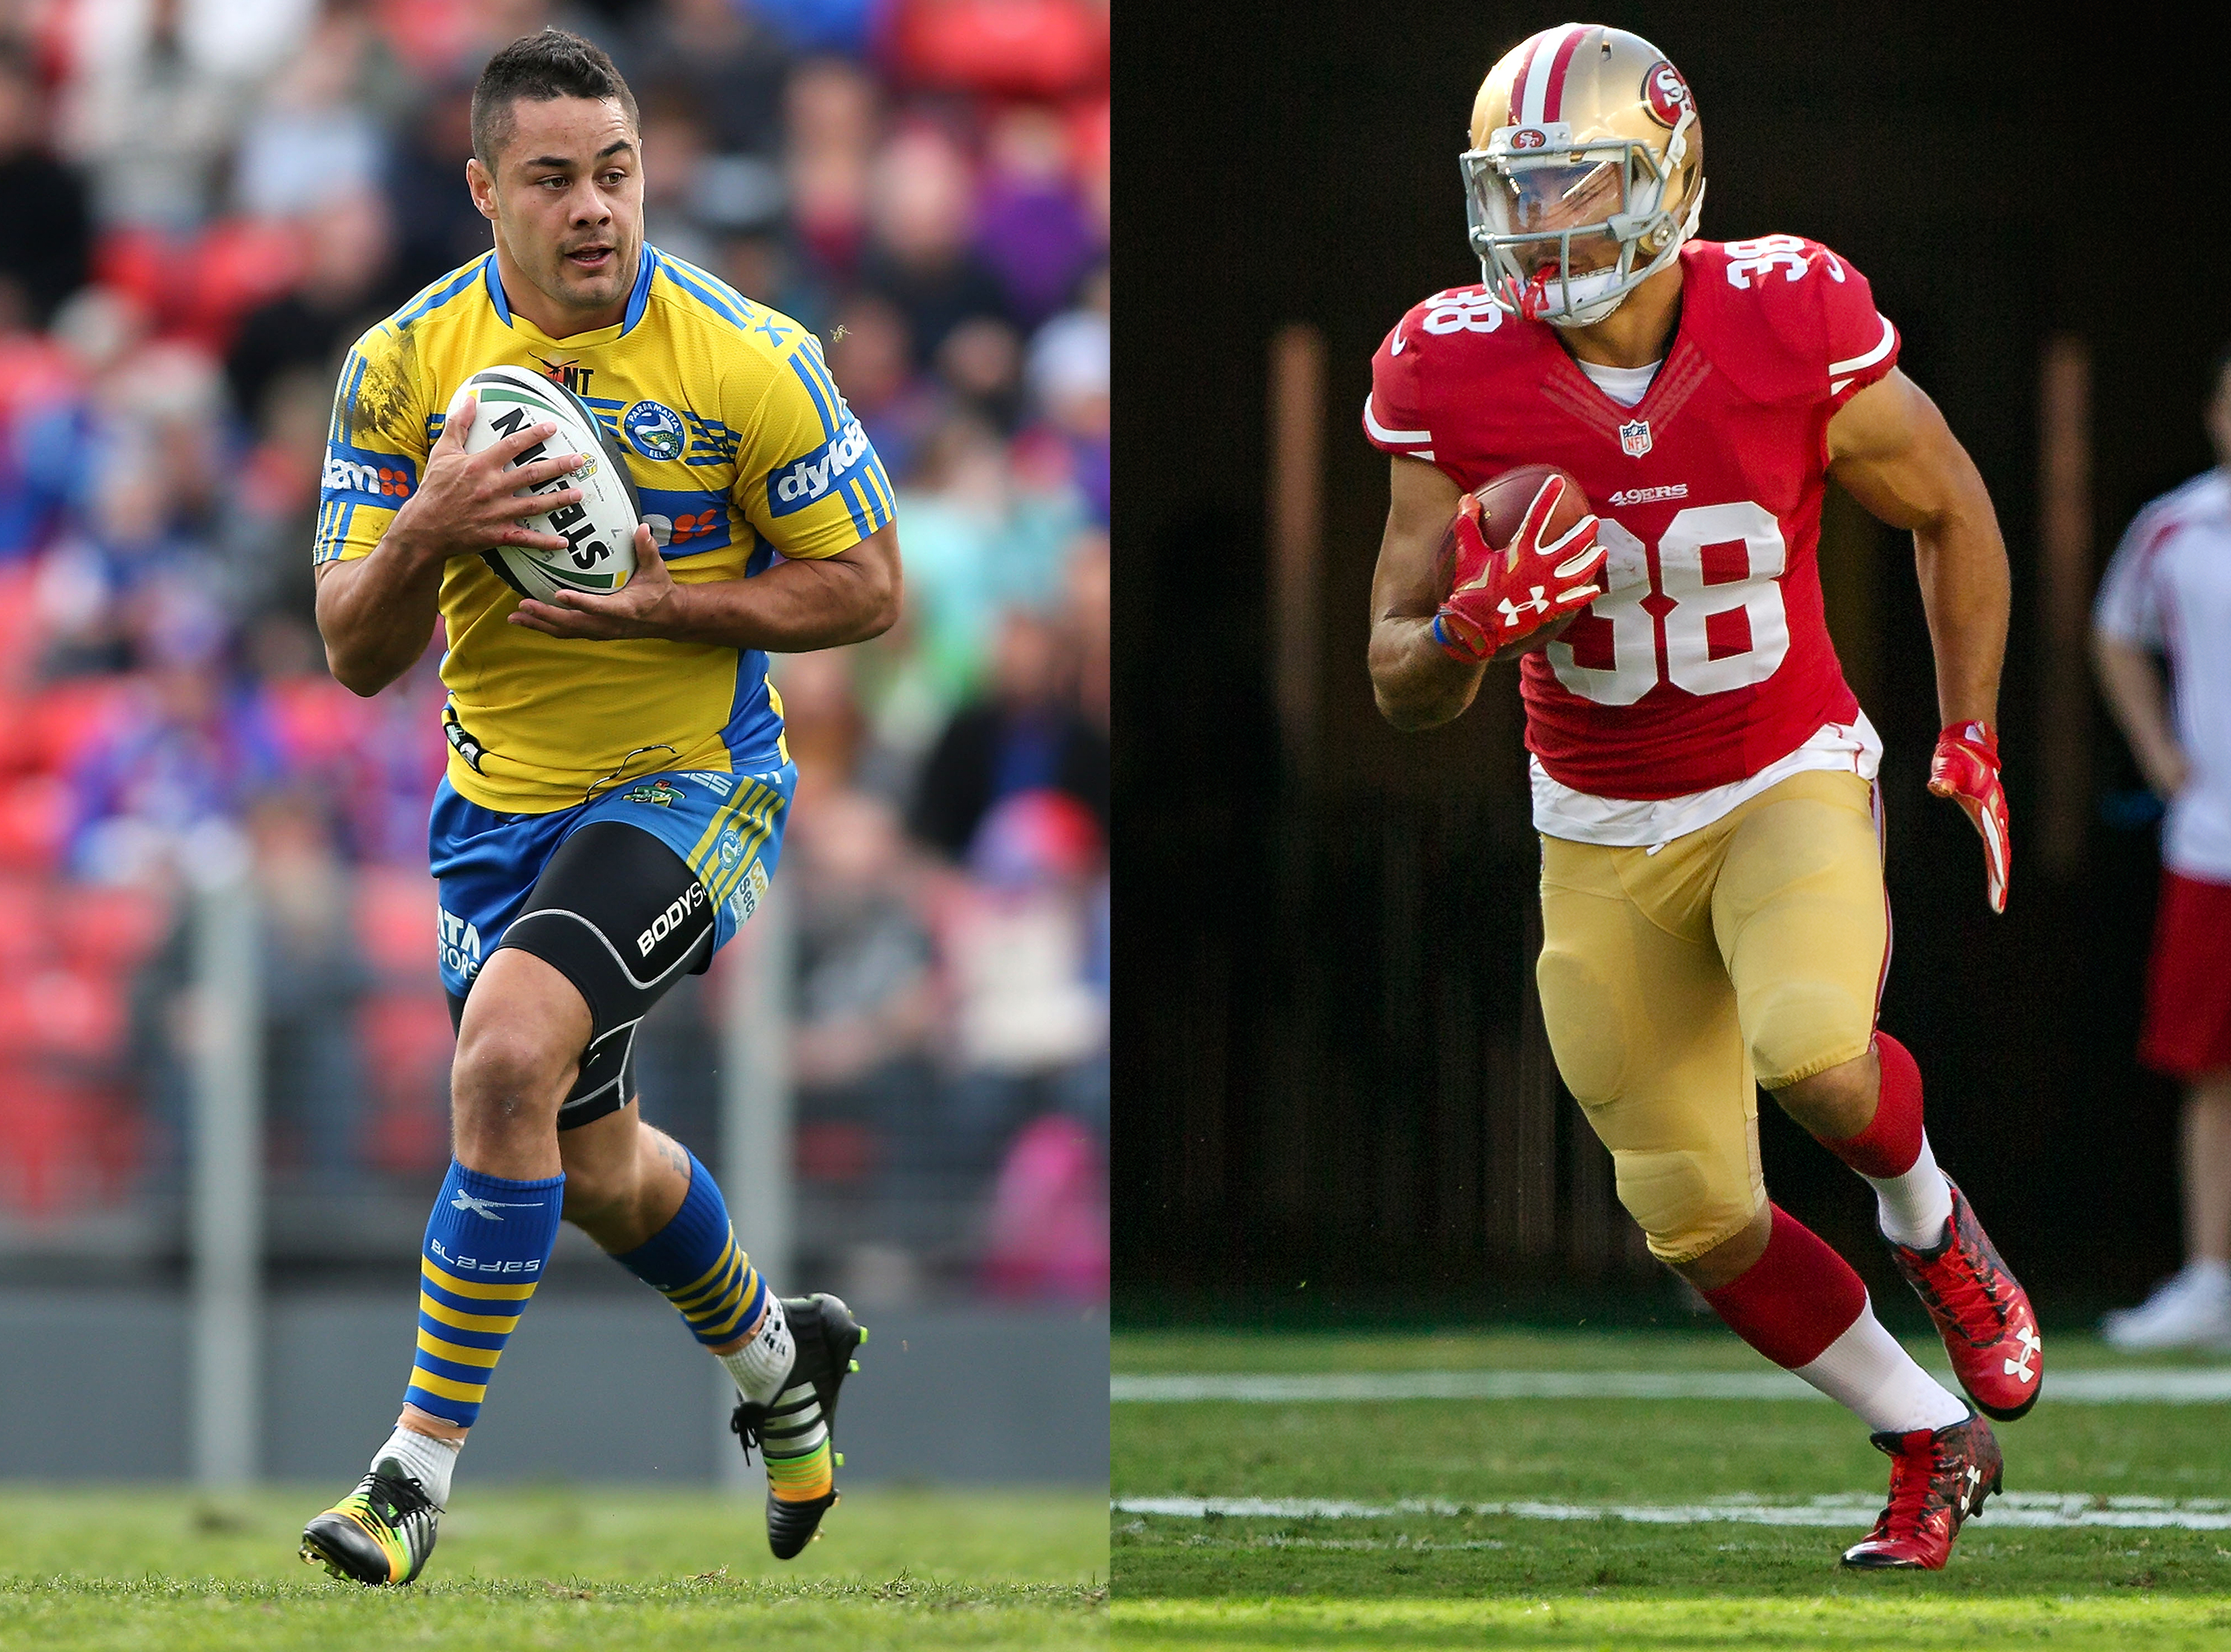 Jarryd Hayne has a good chance of making the 49ers 53-man roster. (Getty Images)